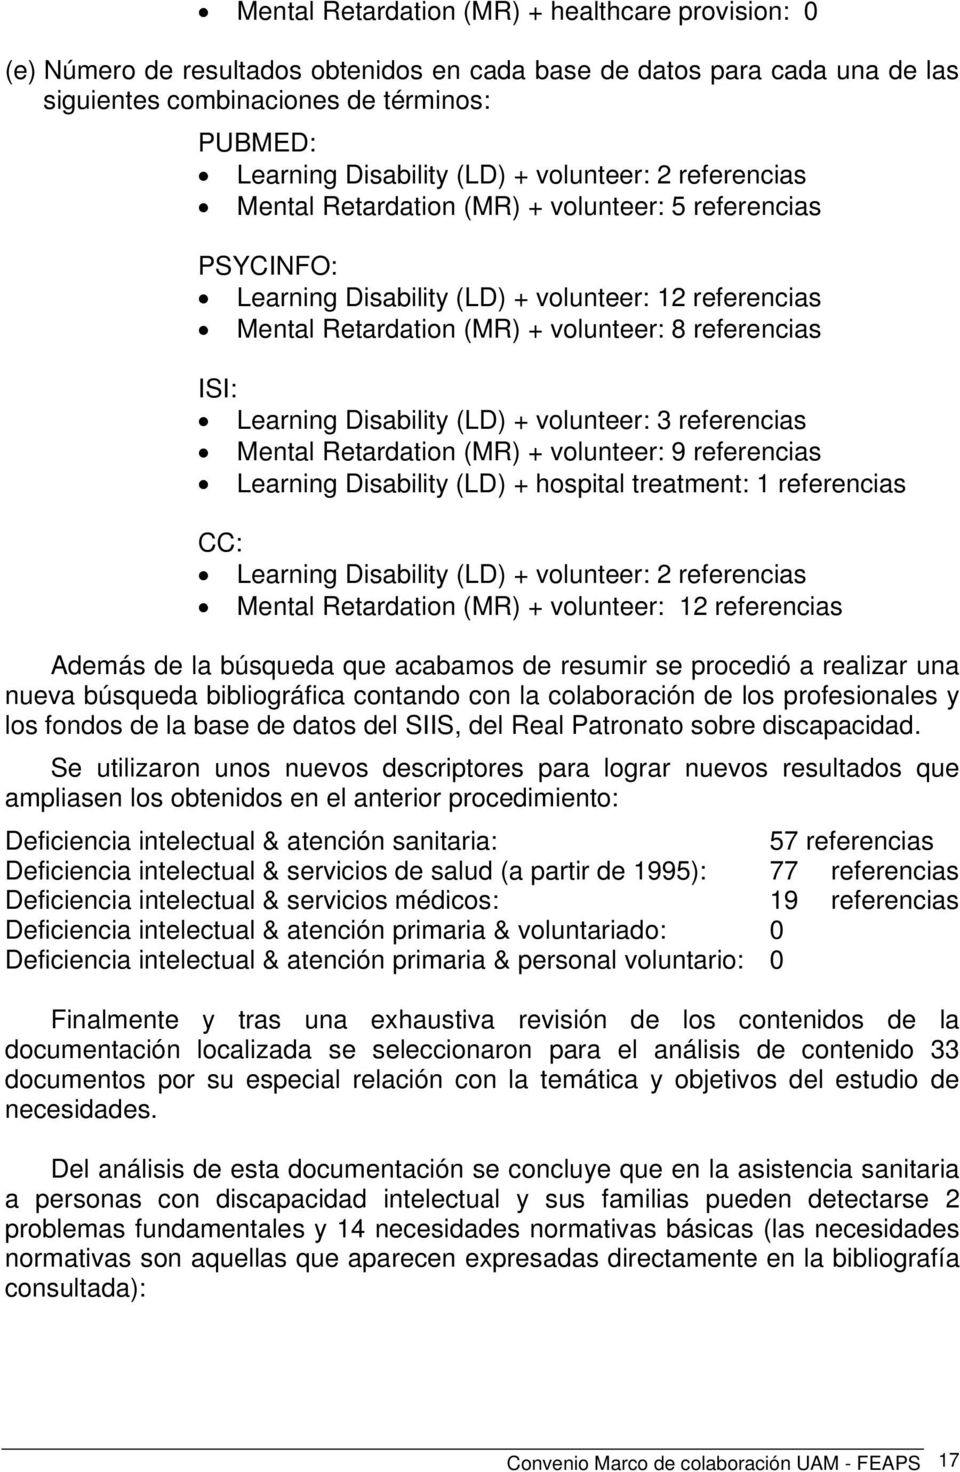 Learning Disability (LD) + volunteer: 3 referencias Mental Retardation (MR) + volunteer: 9 referencias Learning Disability (LD) + hospital treatment: 1 referencias CC: Learning Disability (LD) +